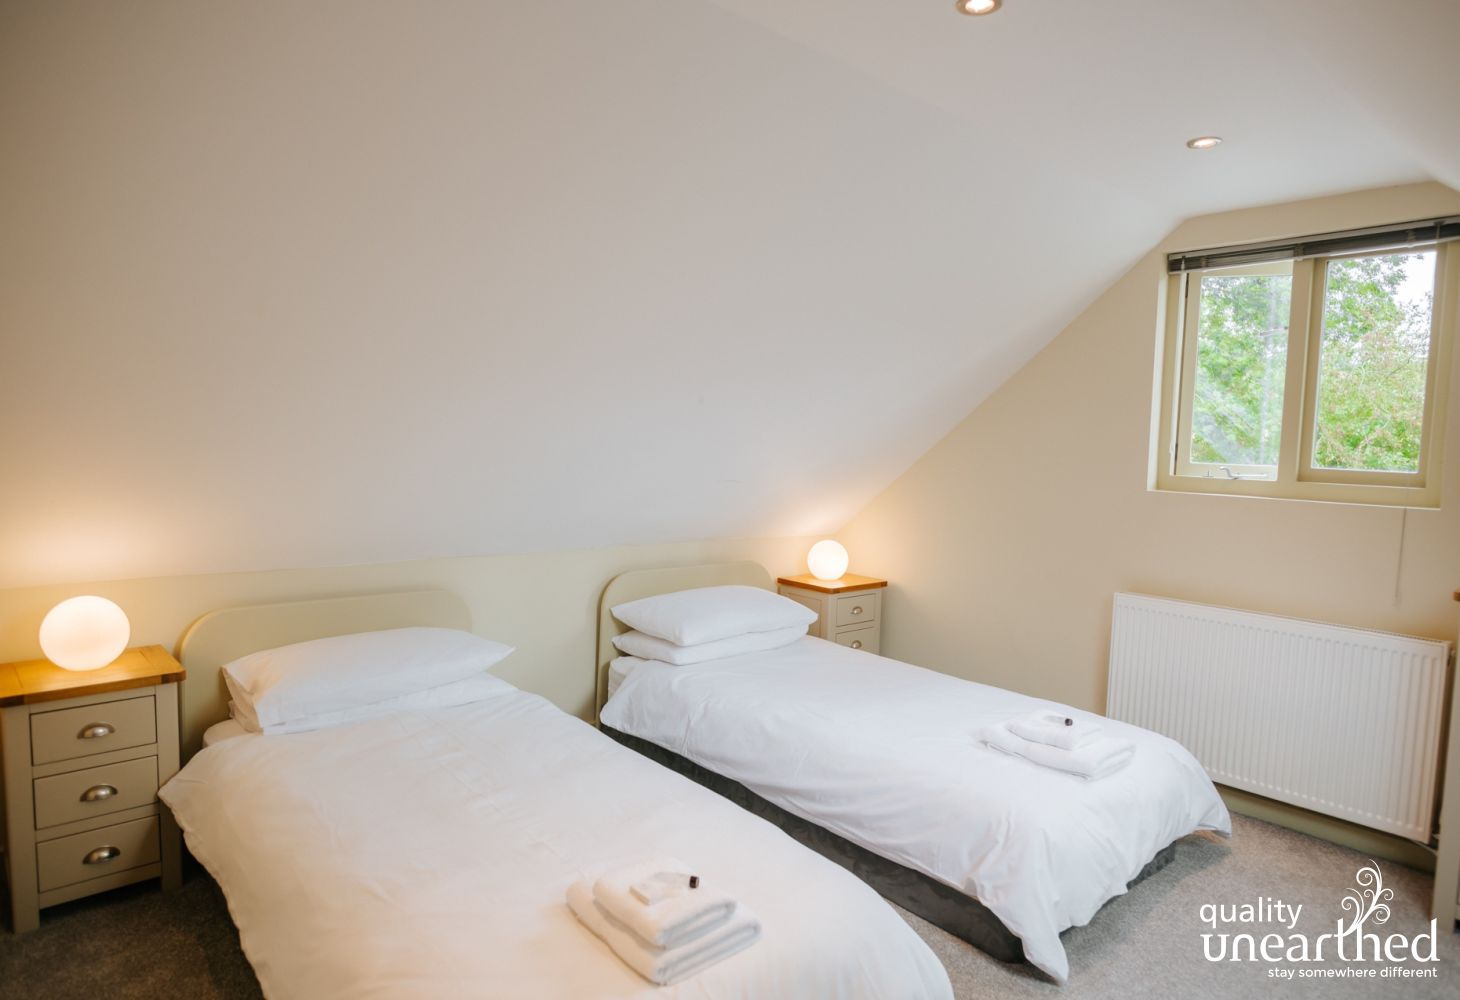 Twin bedroom with a window to the Cotswold woodland setting